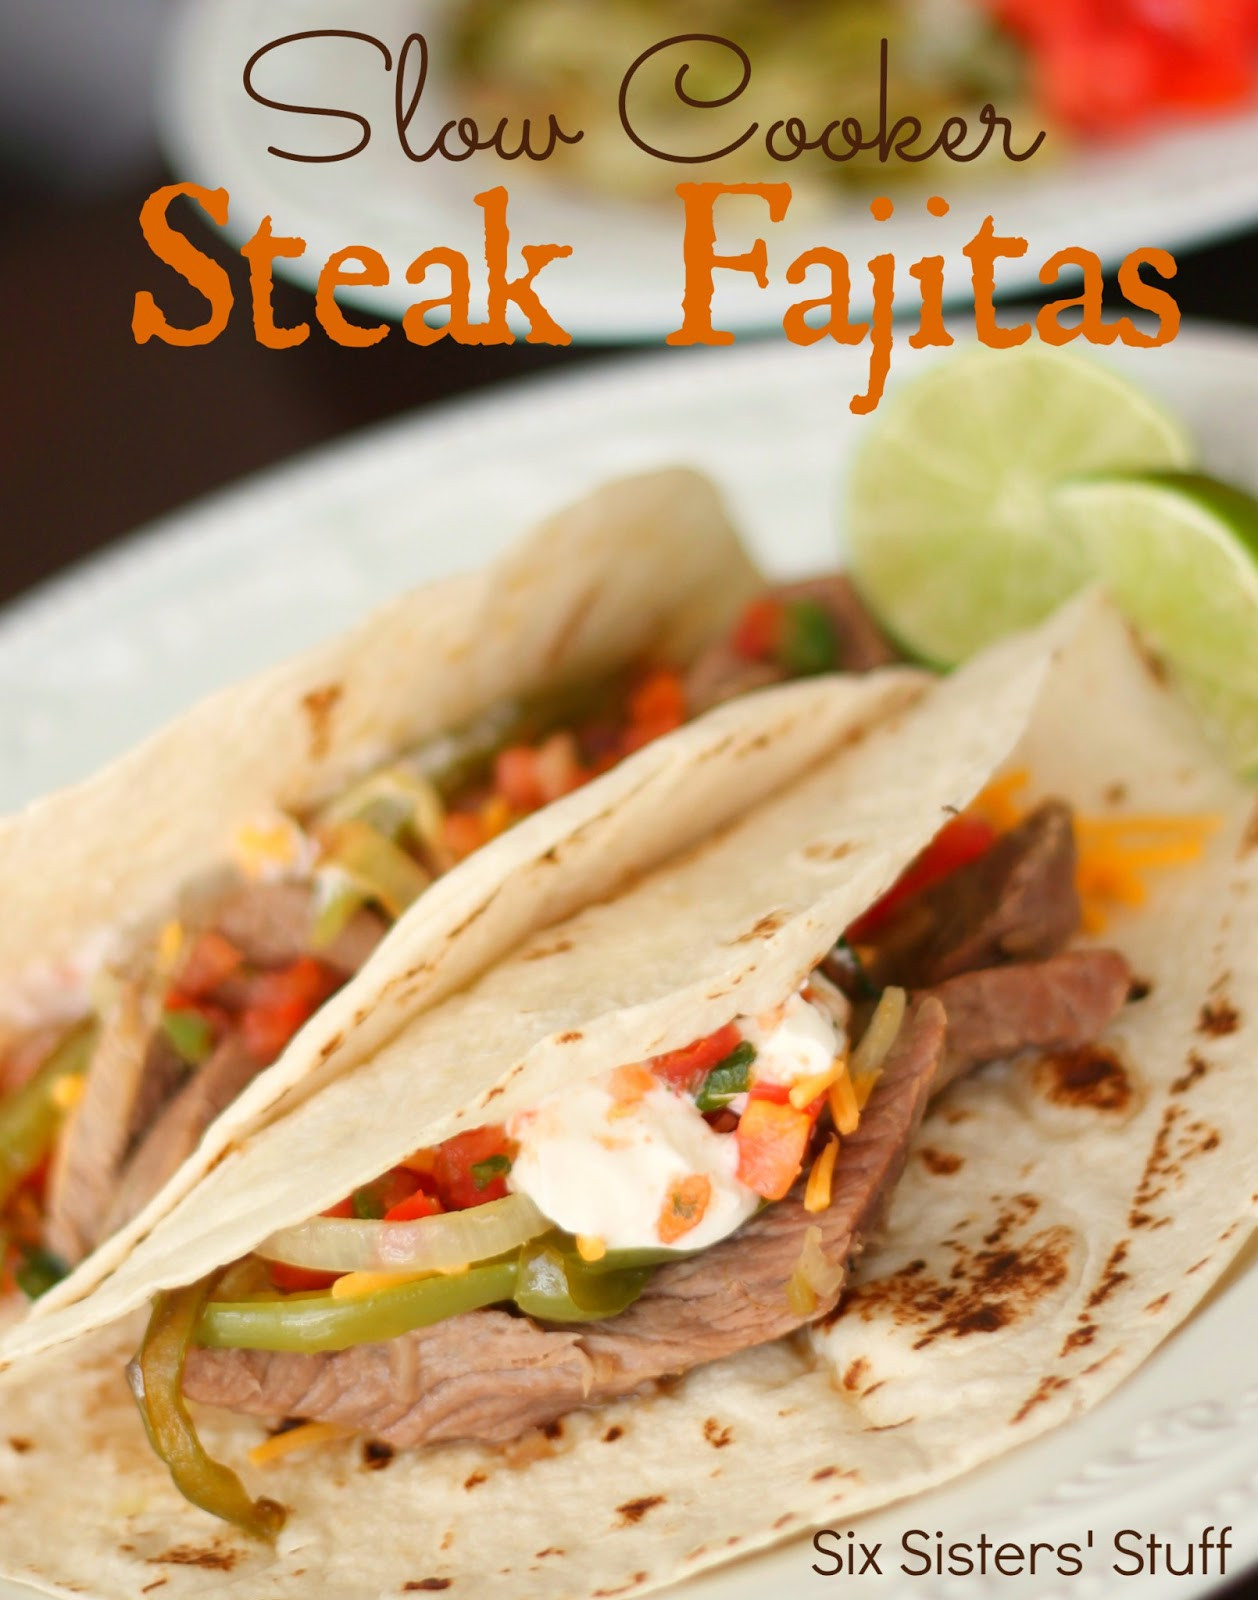 Slow Cooker Steak Fajitas  Slow Cooker Chili s Steak Fajitas Recipe